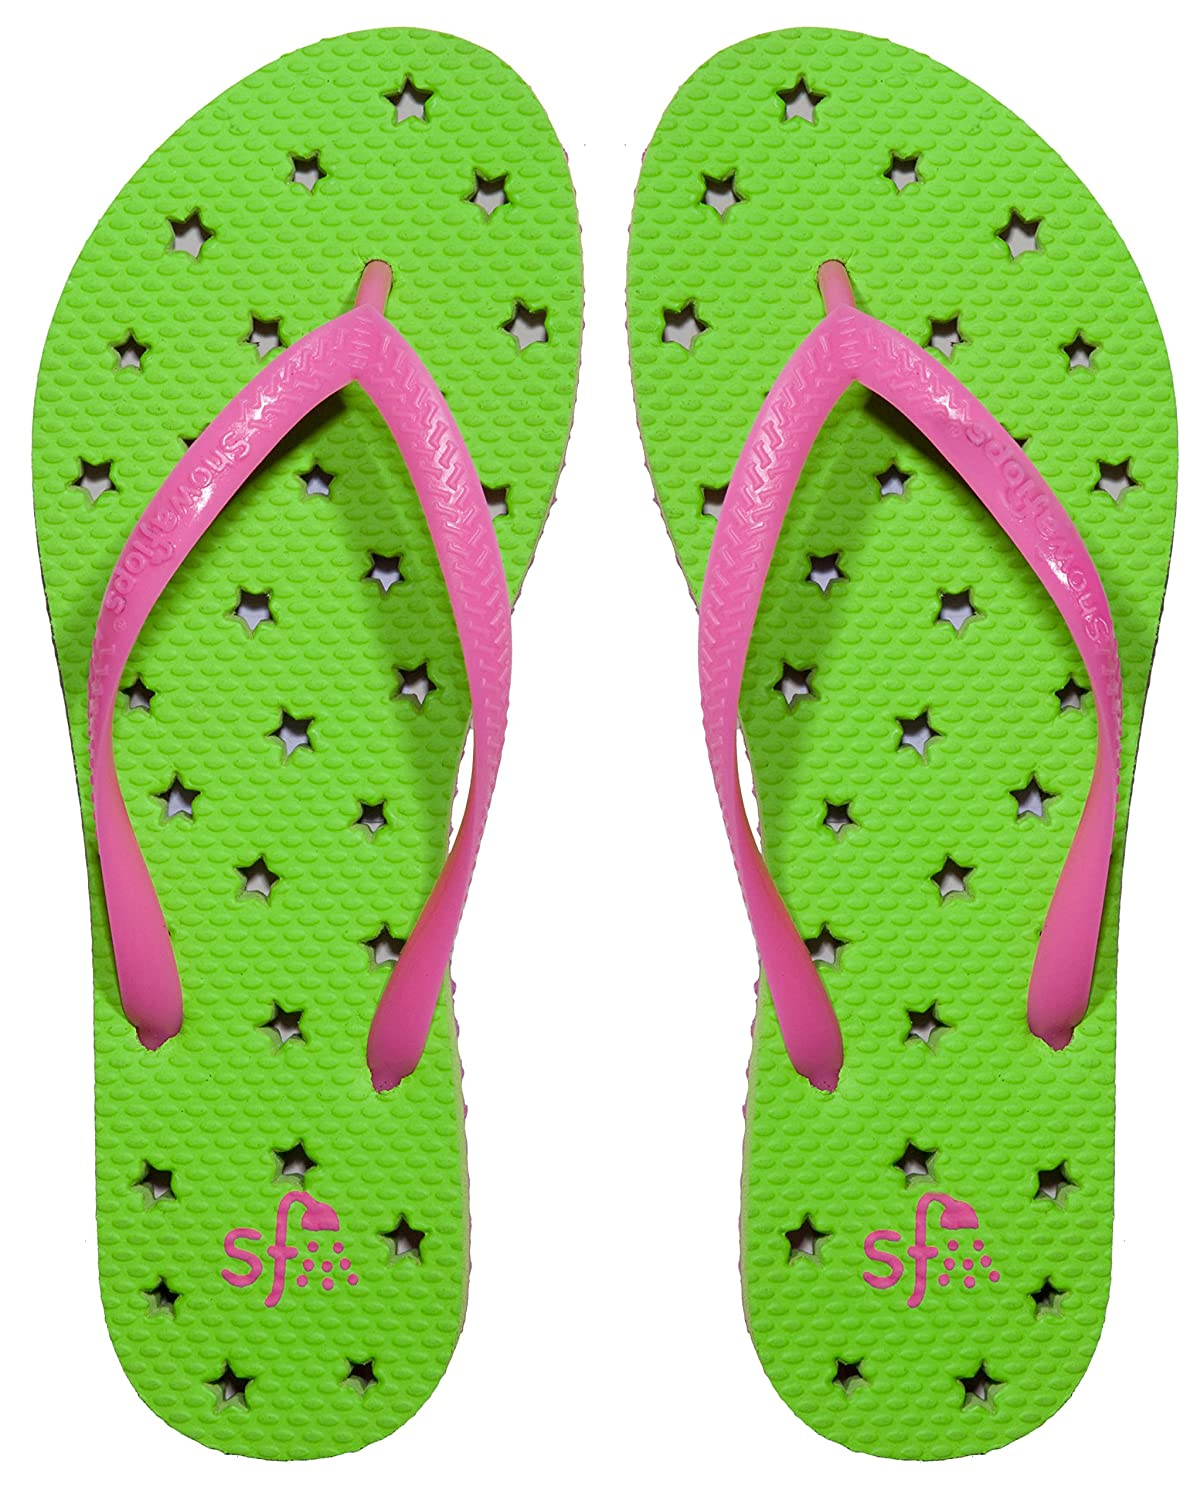 Showaflops Girl's Antimicrobial Shower & Water Sandals - Stars купить